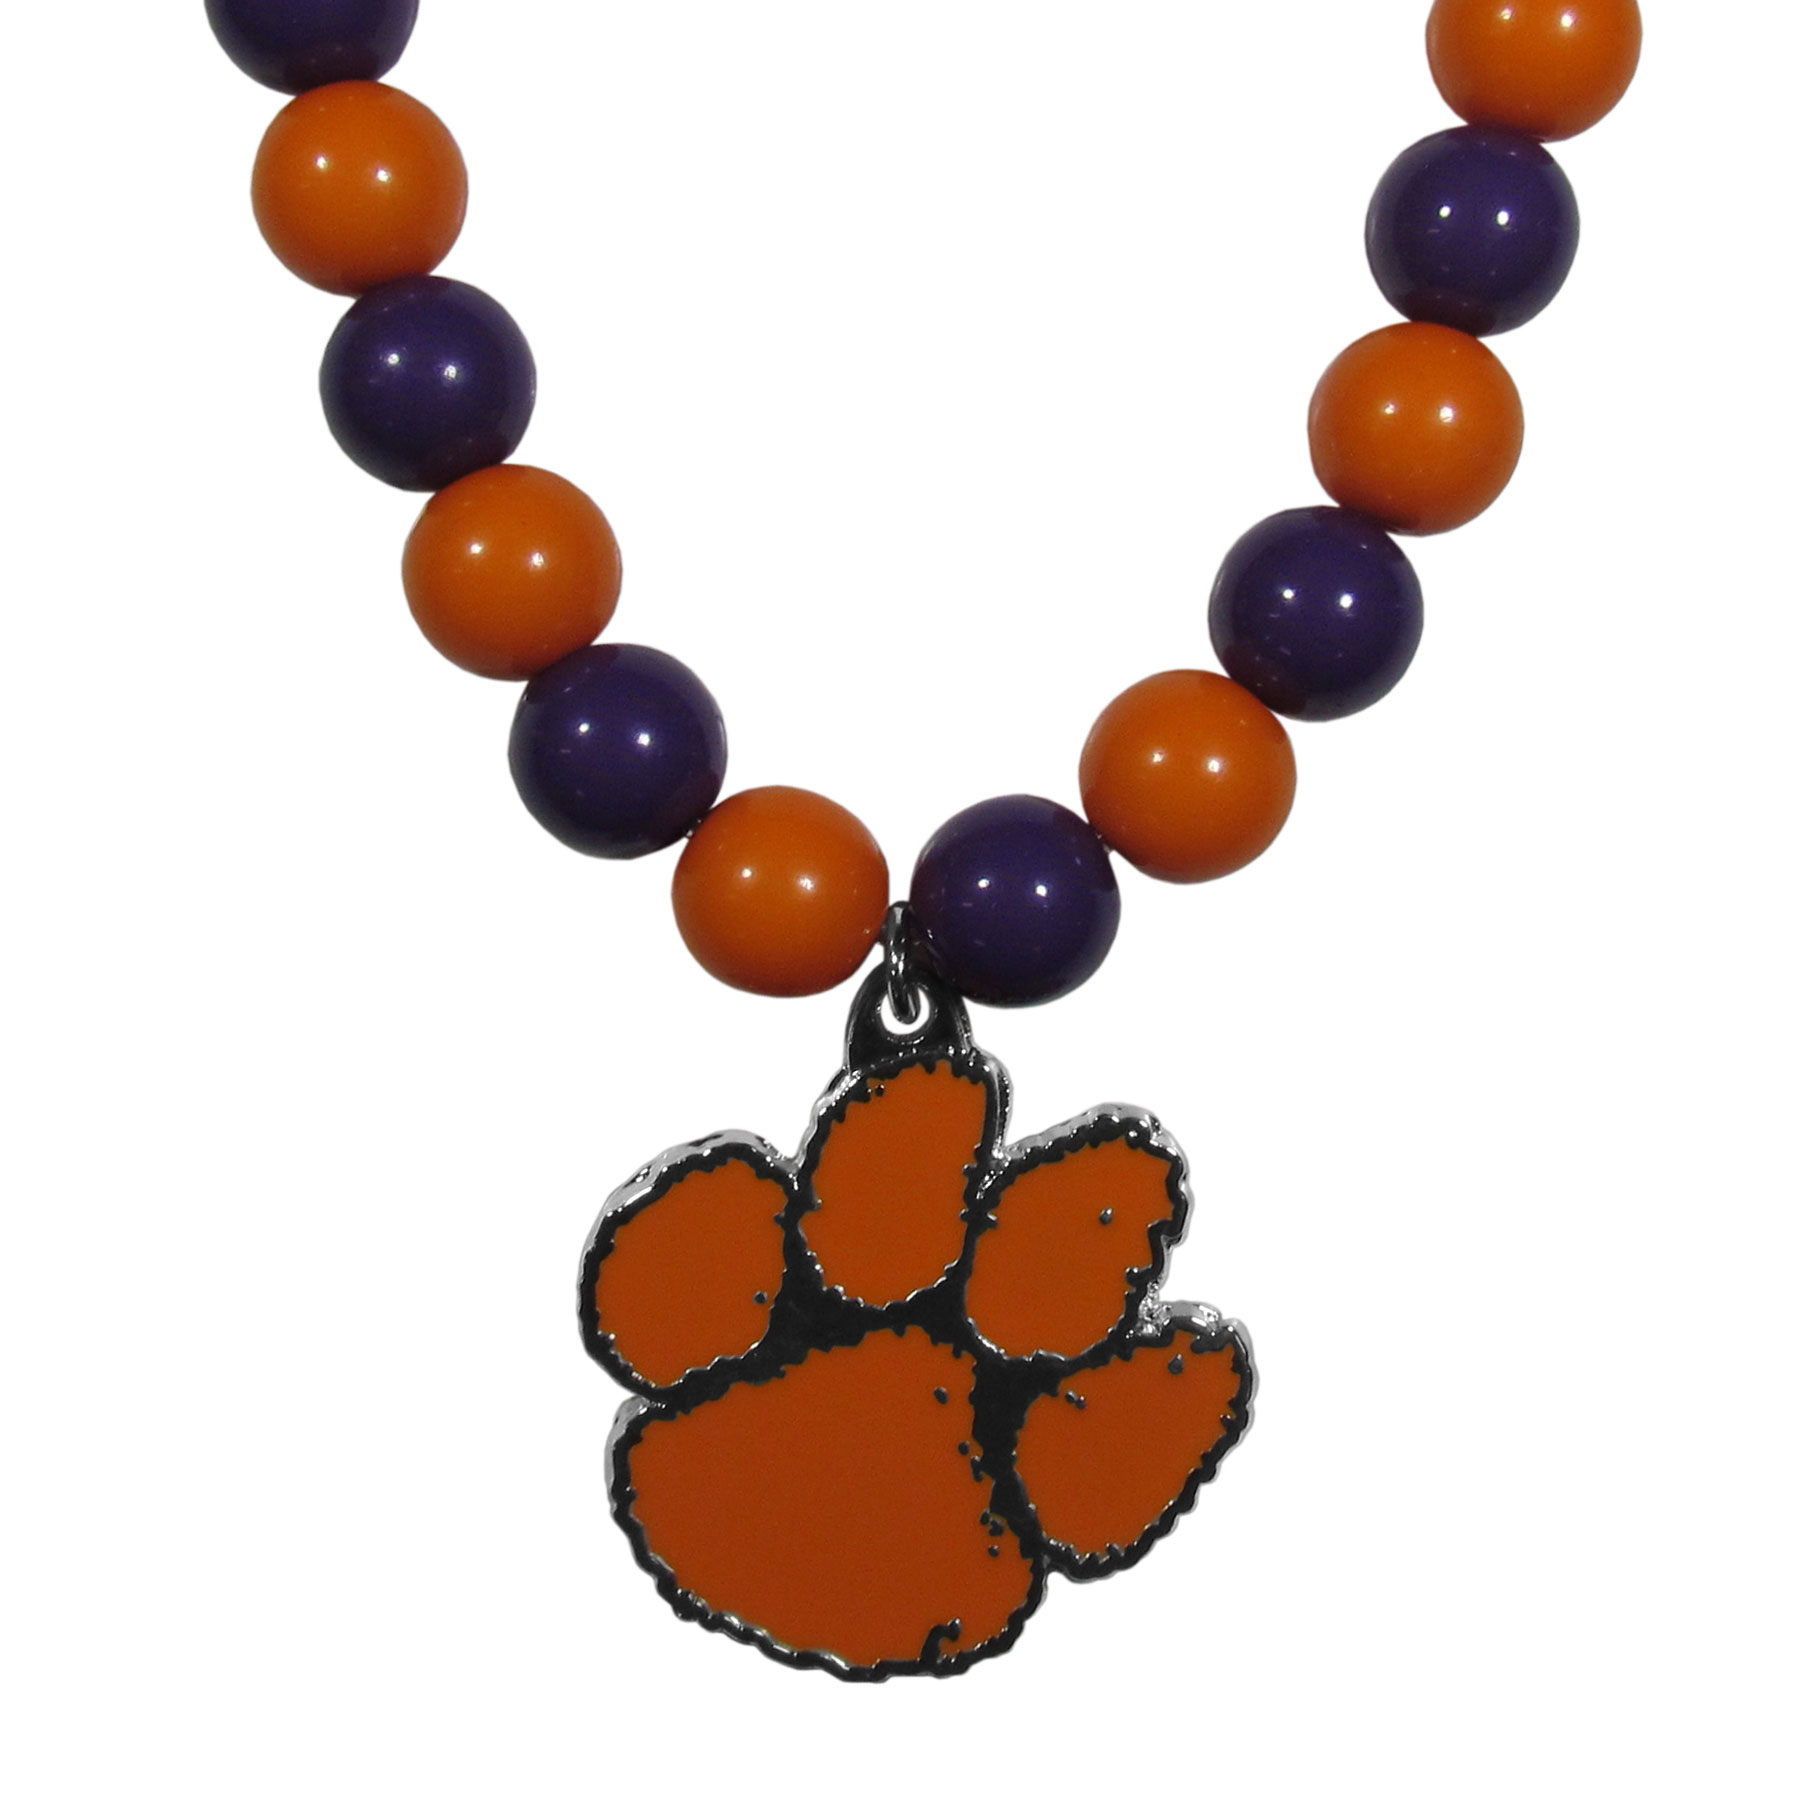 Clemson Tigers Fan Bead Necklace - Make a big statement with our fan bead necklaces! These brightly colored necklace have a 24 inch string of alternating colored beads with an extra large, high-polish Clemson Tigers pendant.